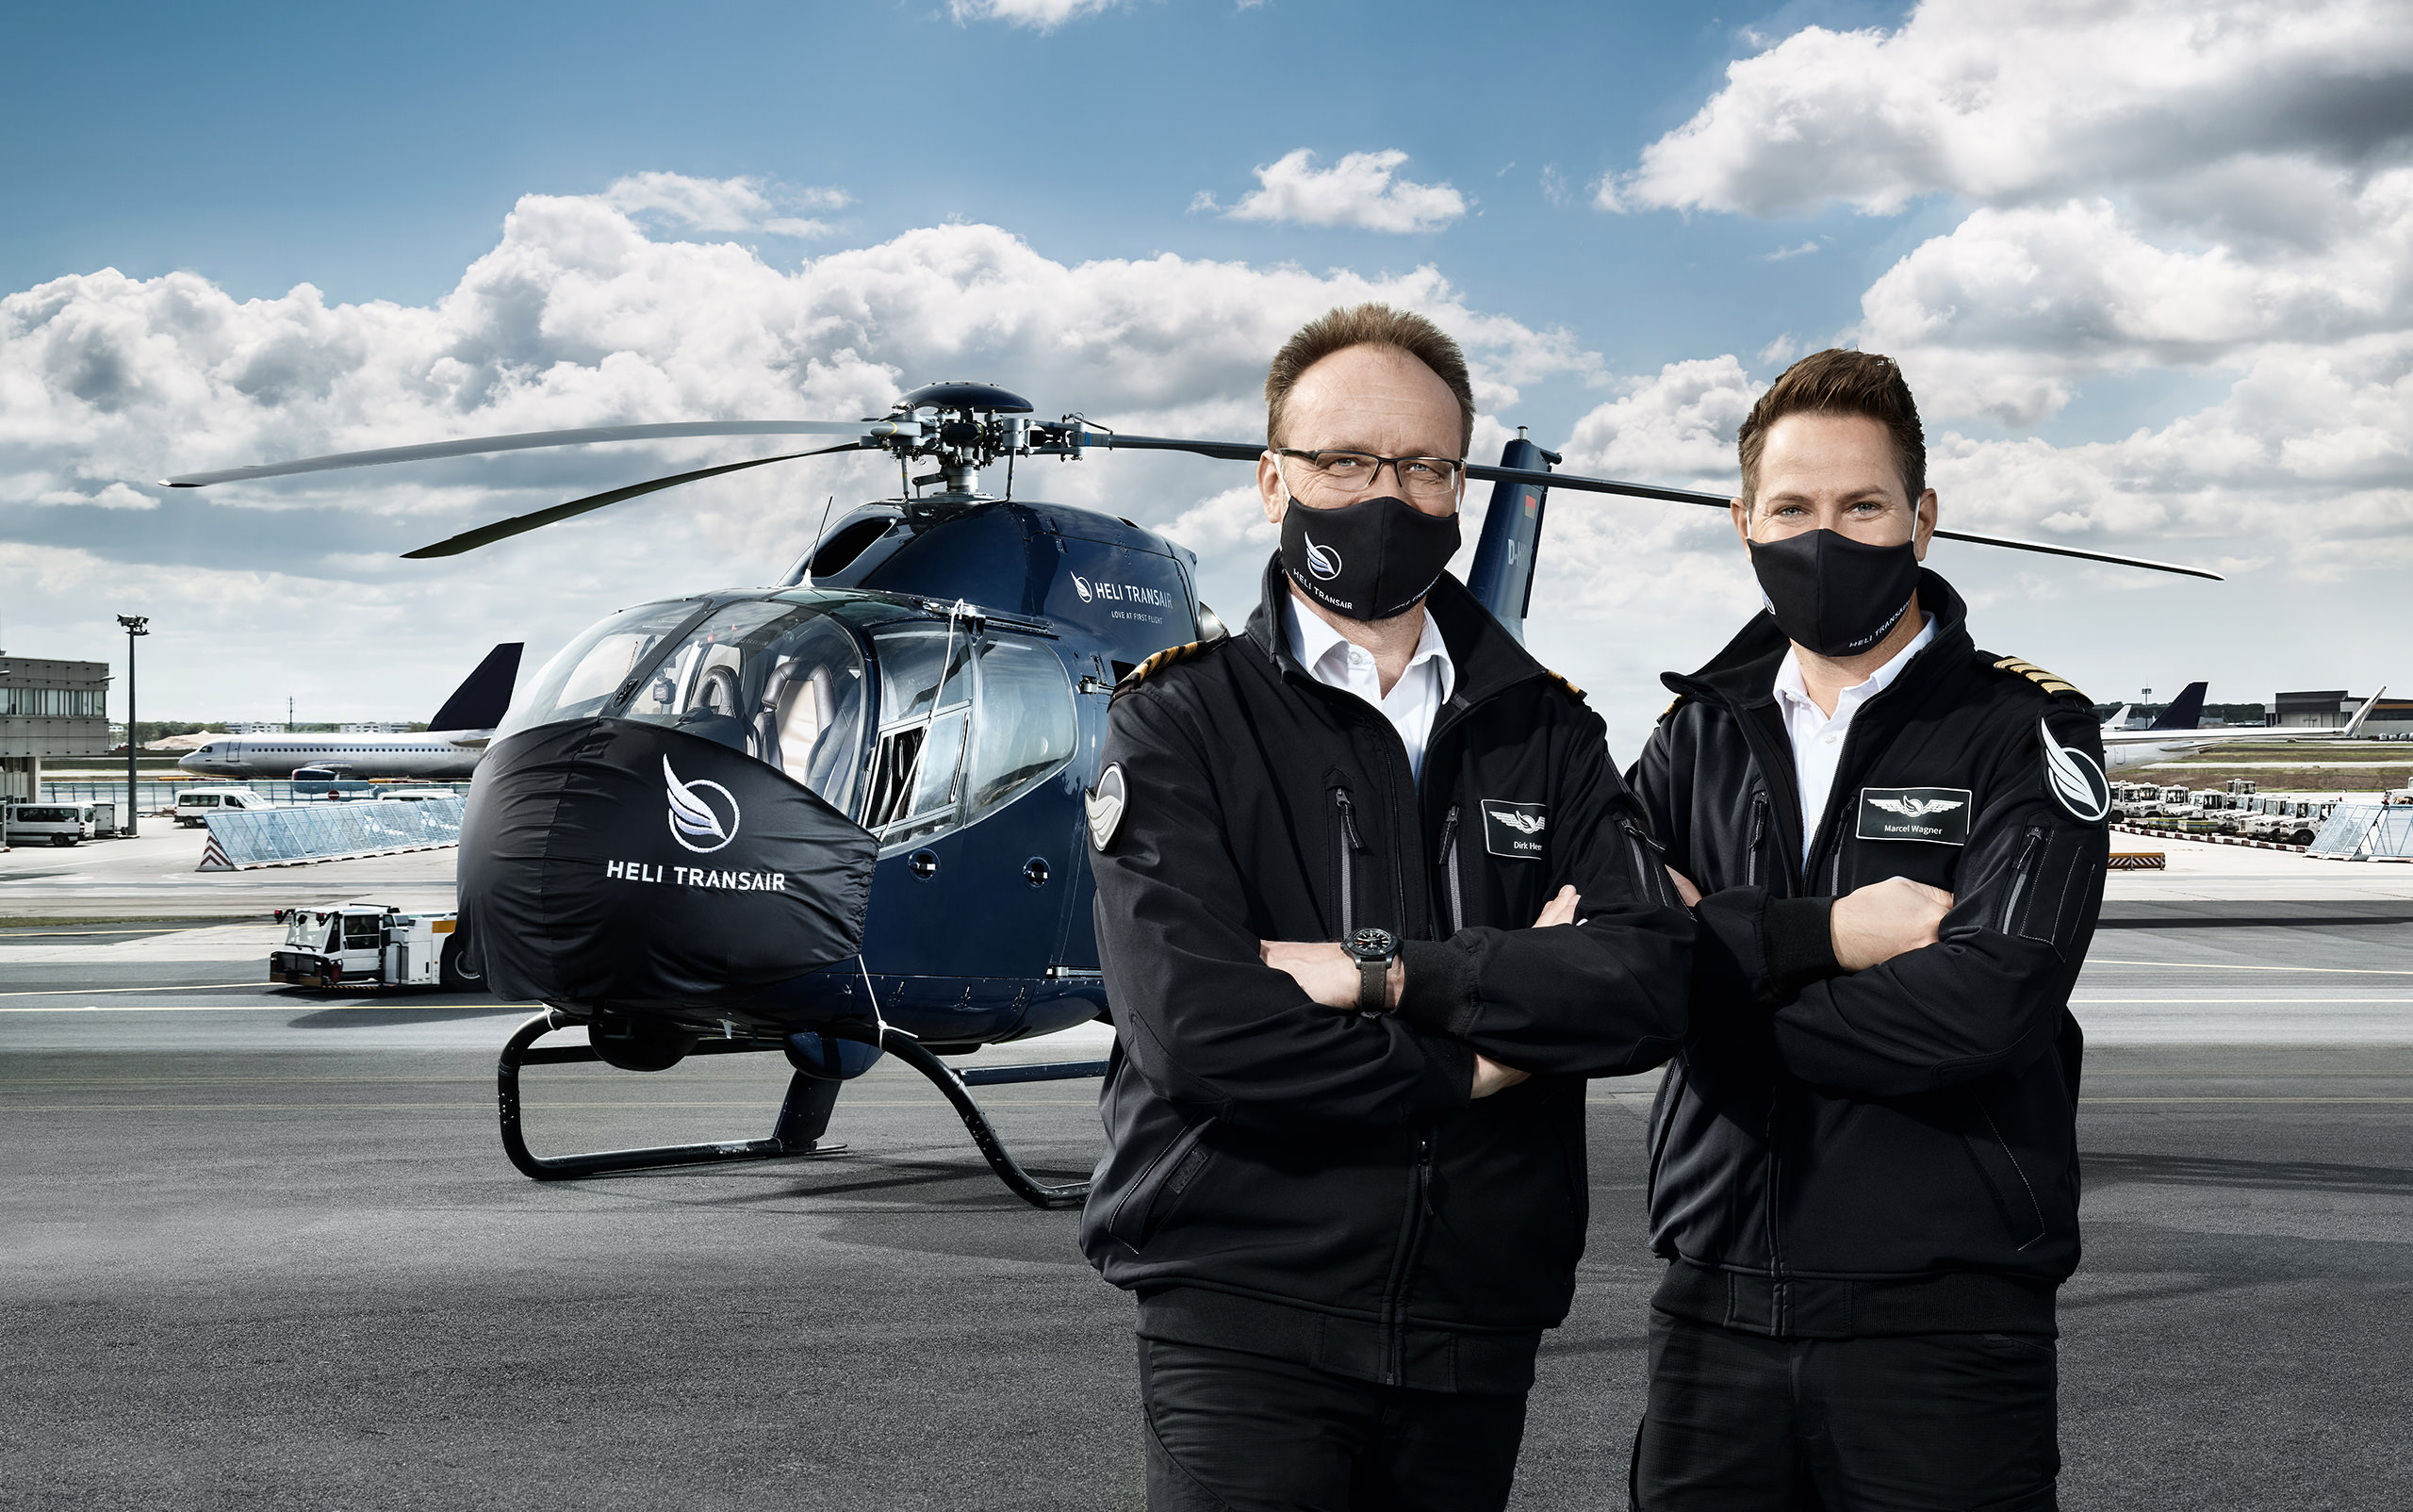 Mit Heli Transair in der sichersten First Class reisen